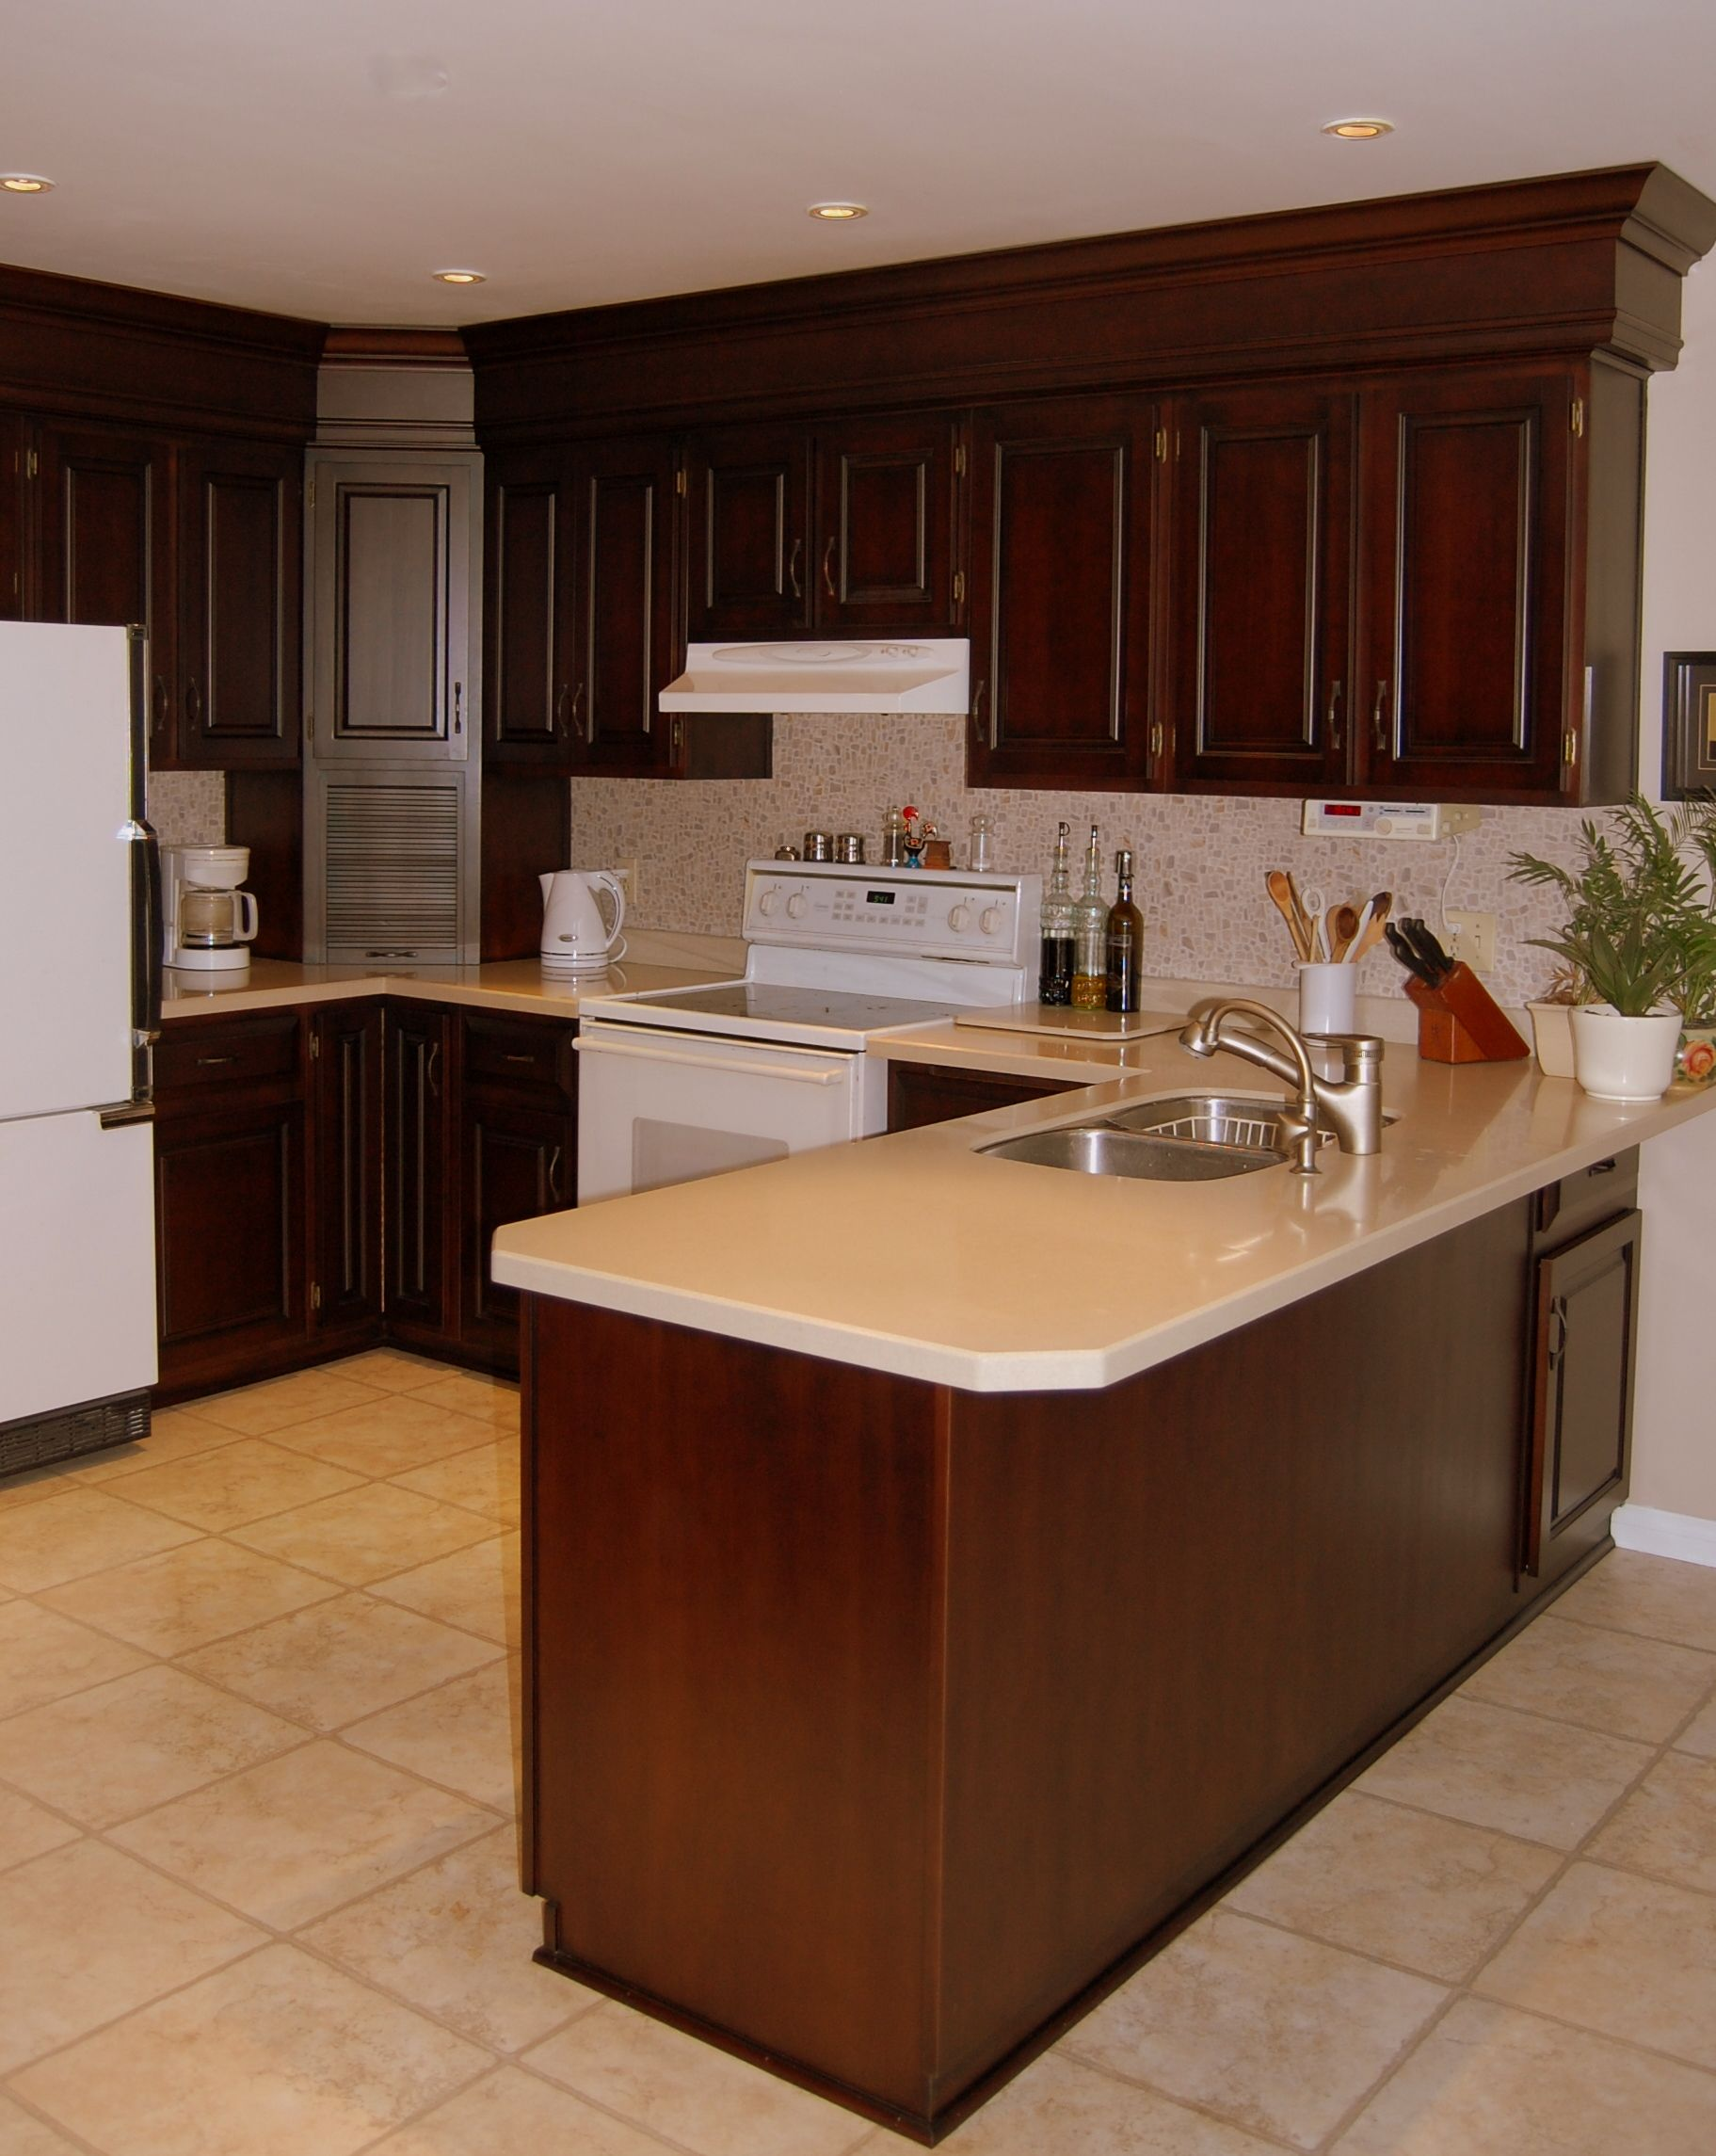 Cherry kitchen with two piece crown molding and paneling to cover